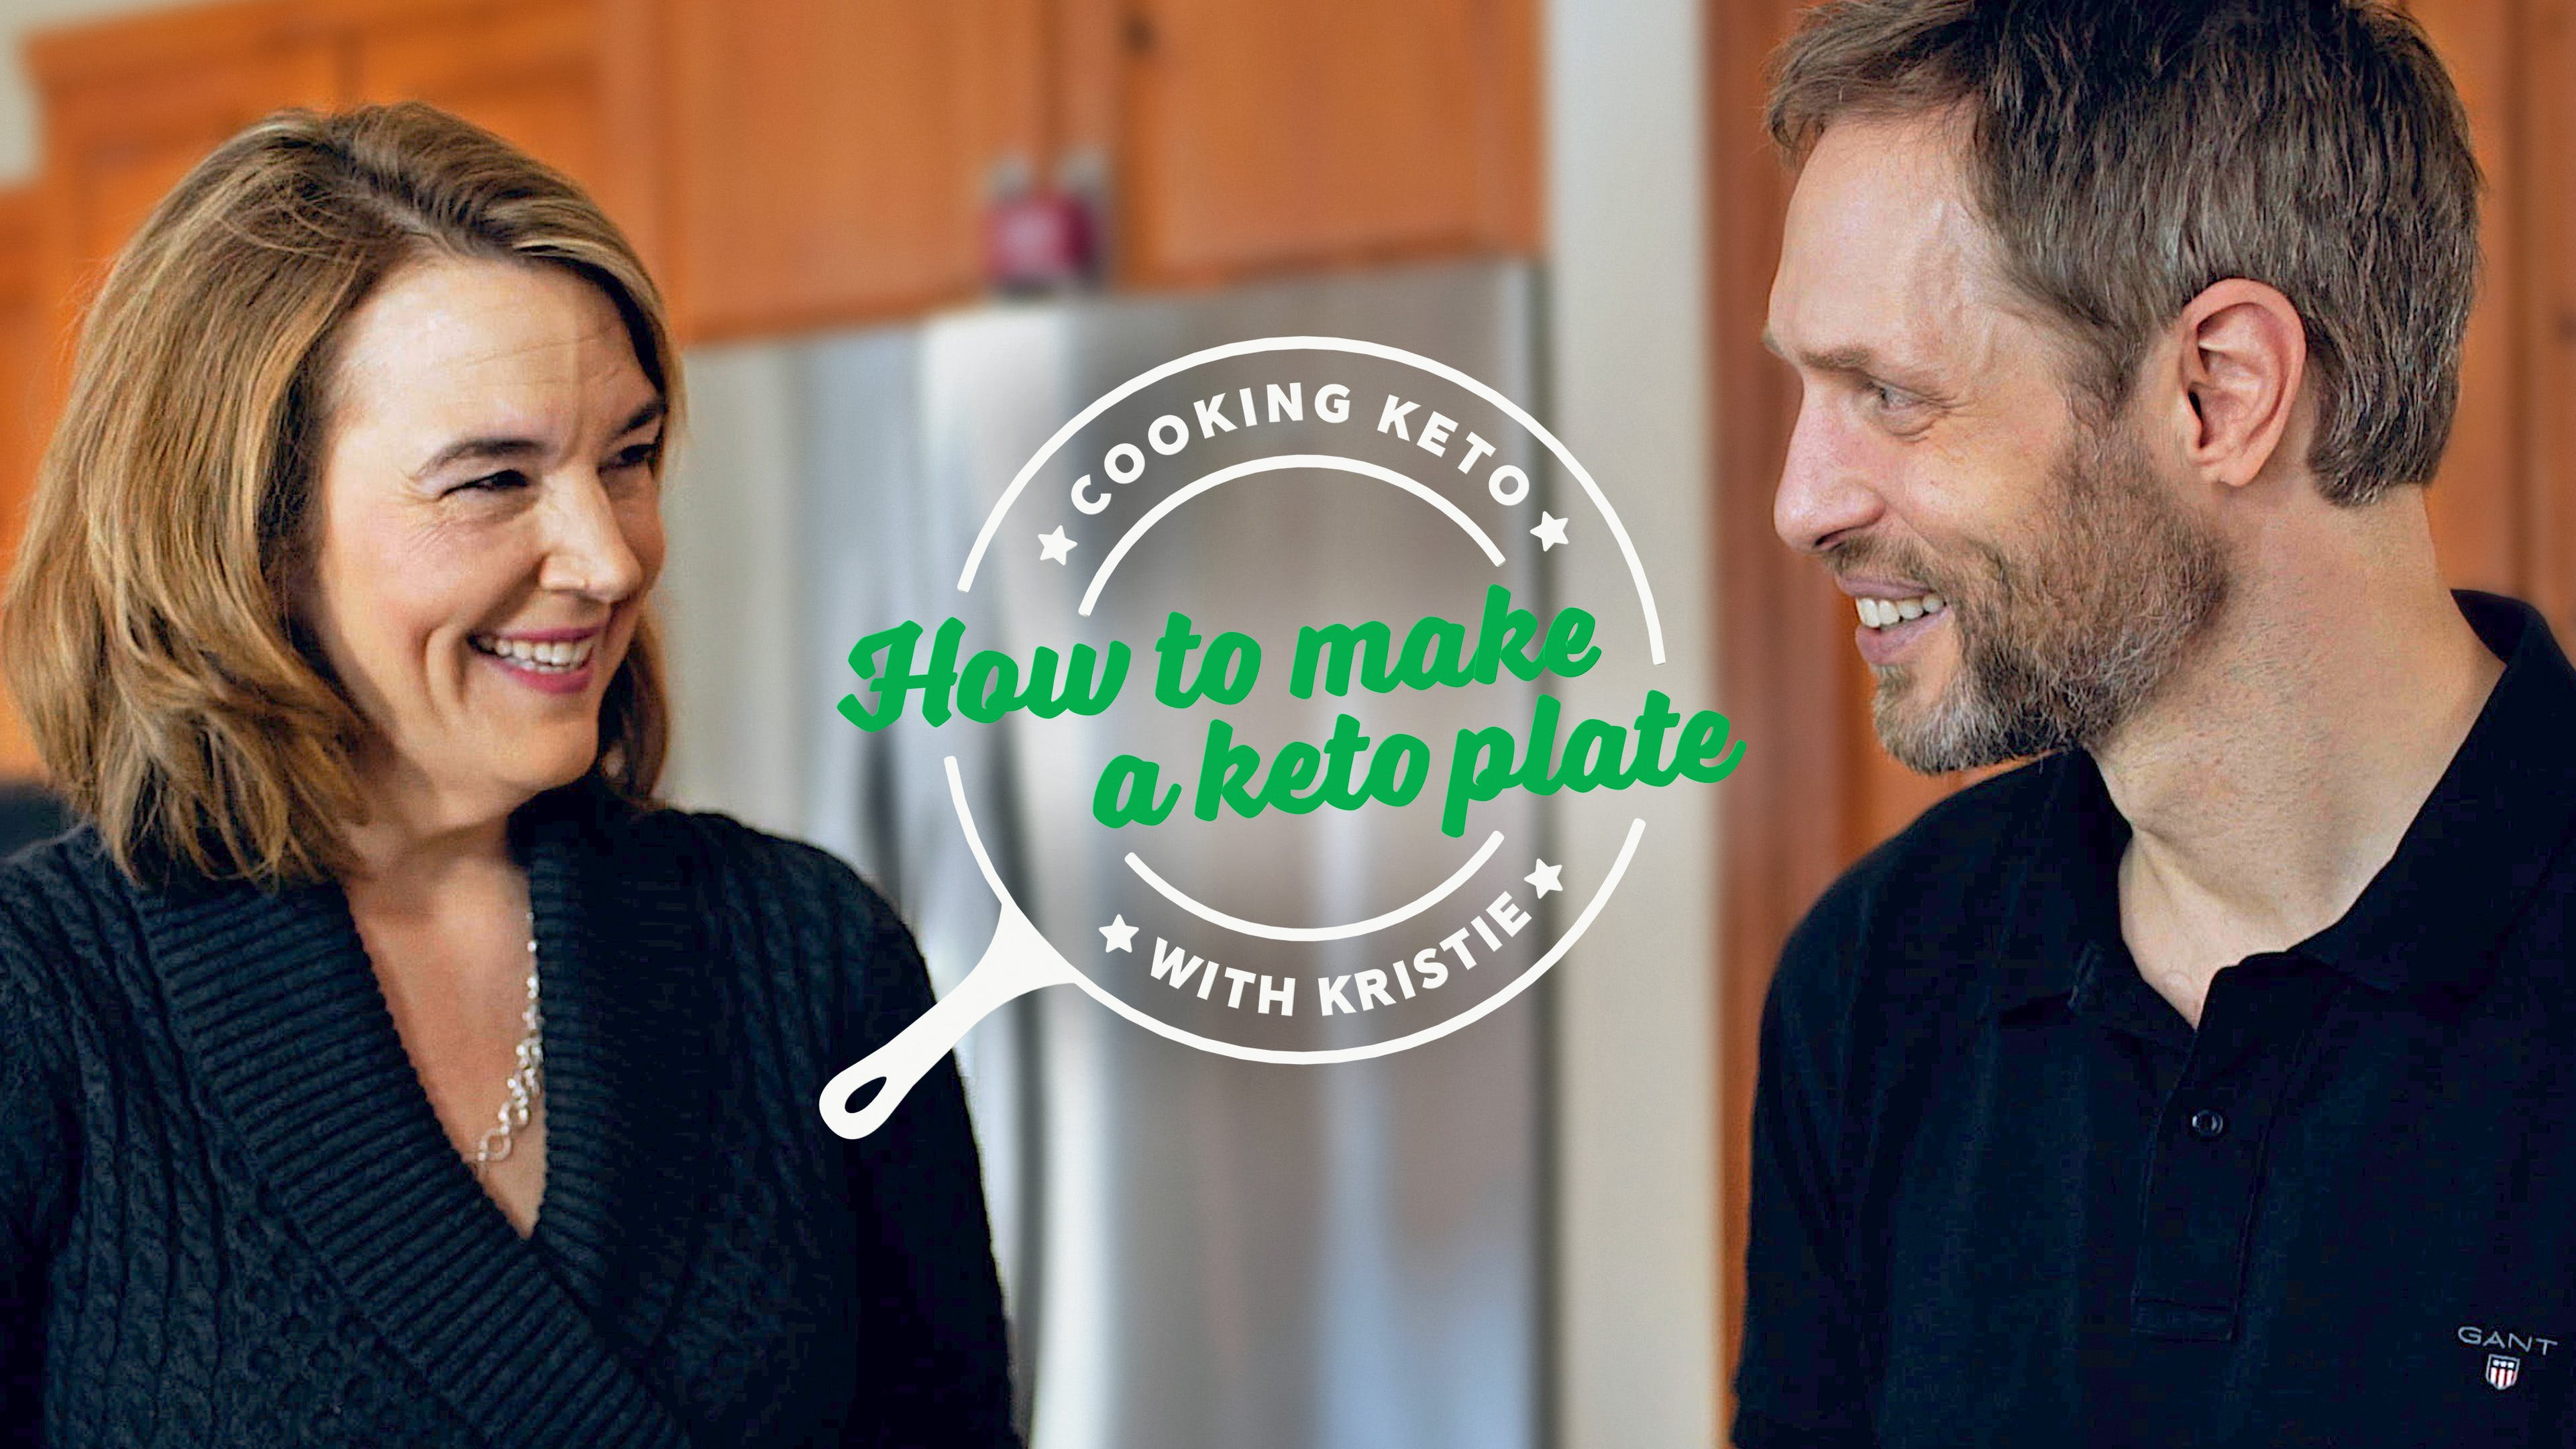 Cooking with Kristie: How to make a keto plate – Andreas